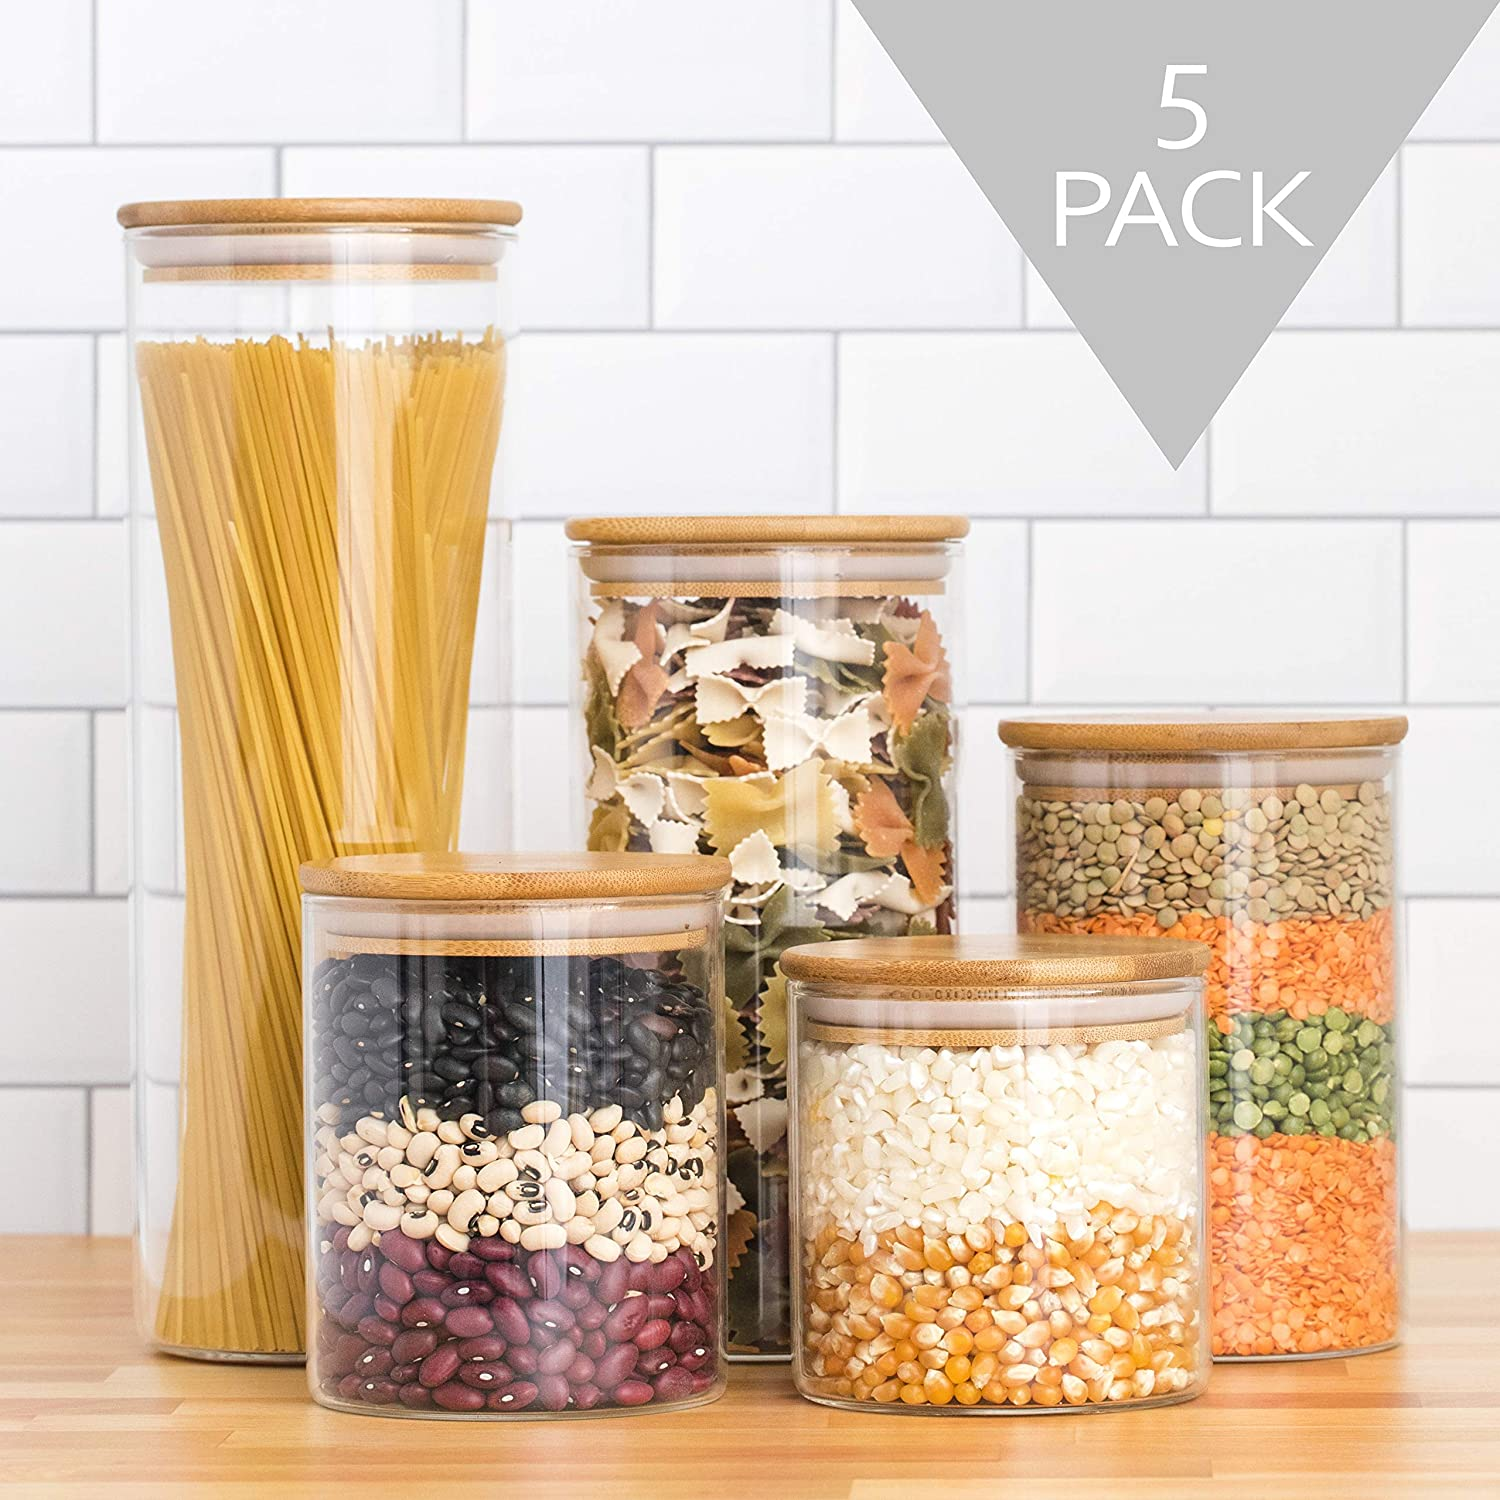 Glass Canisters Set of 5 - Glass Storage Containers   Glass Jars with Bamboo Lids   Spice Jars with wood lids   Glass Containers with Airtight lids  Pantry Storage Jars for Pasta, Coffee, Sugar, Candy